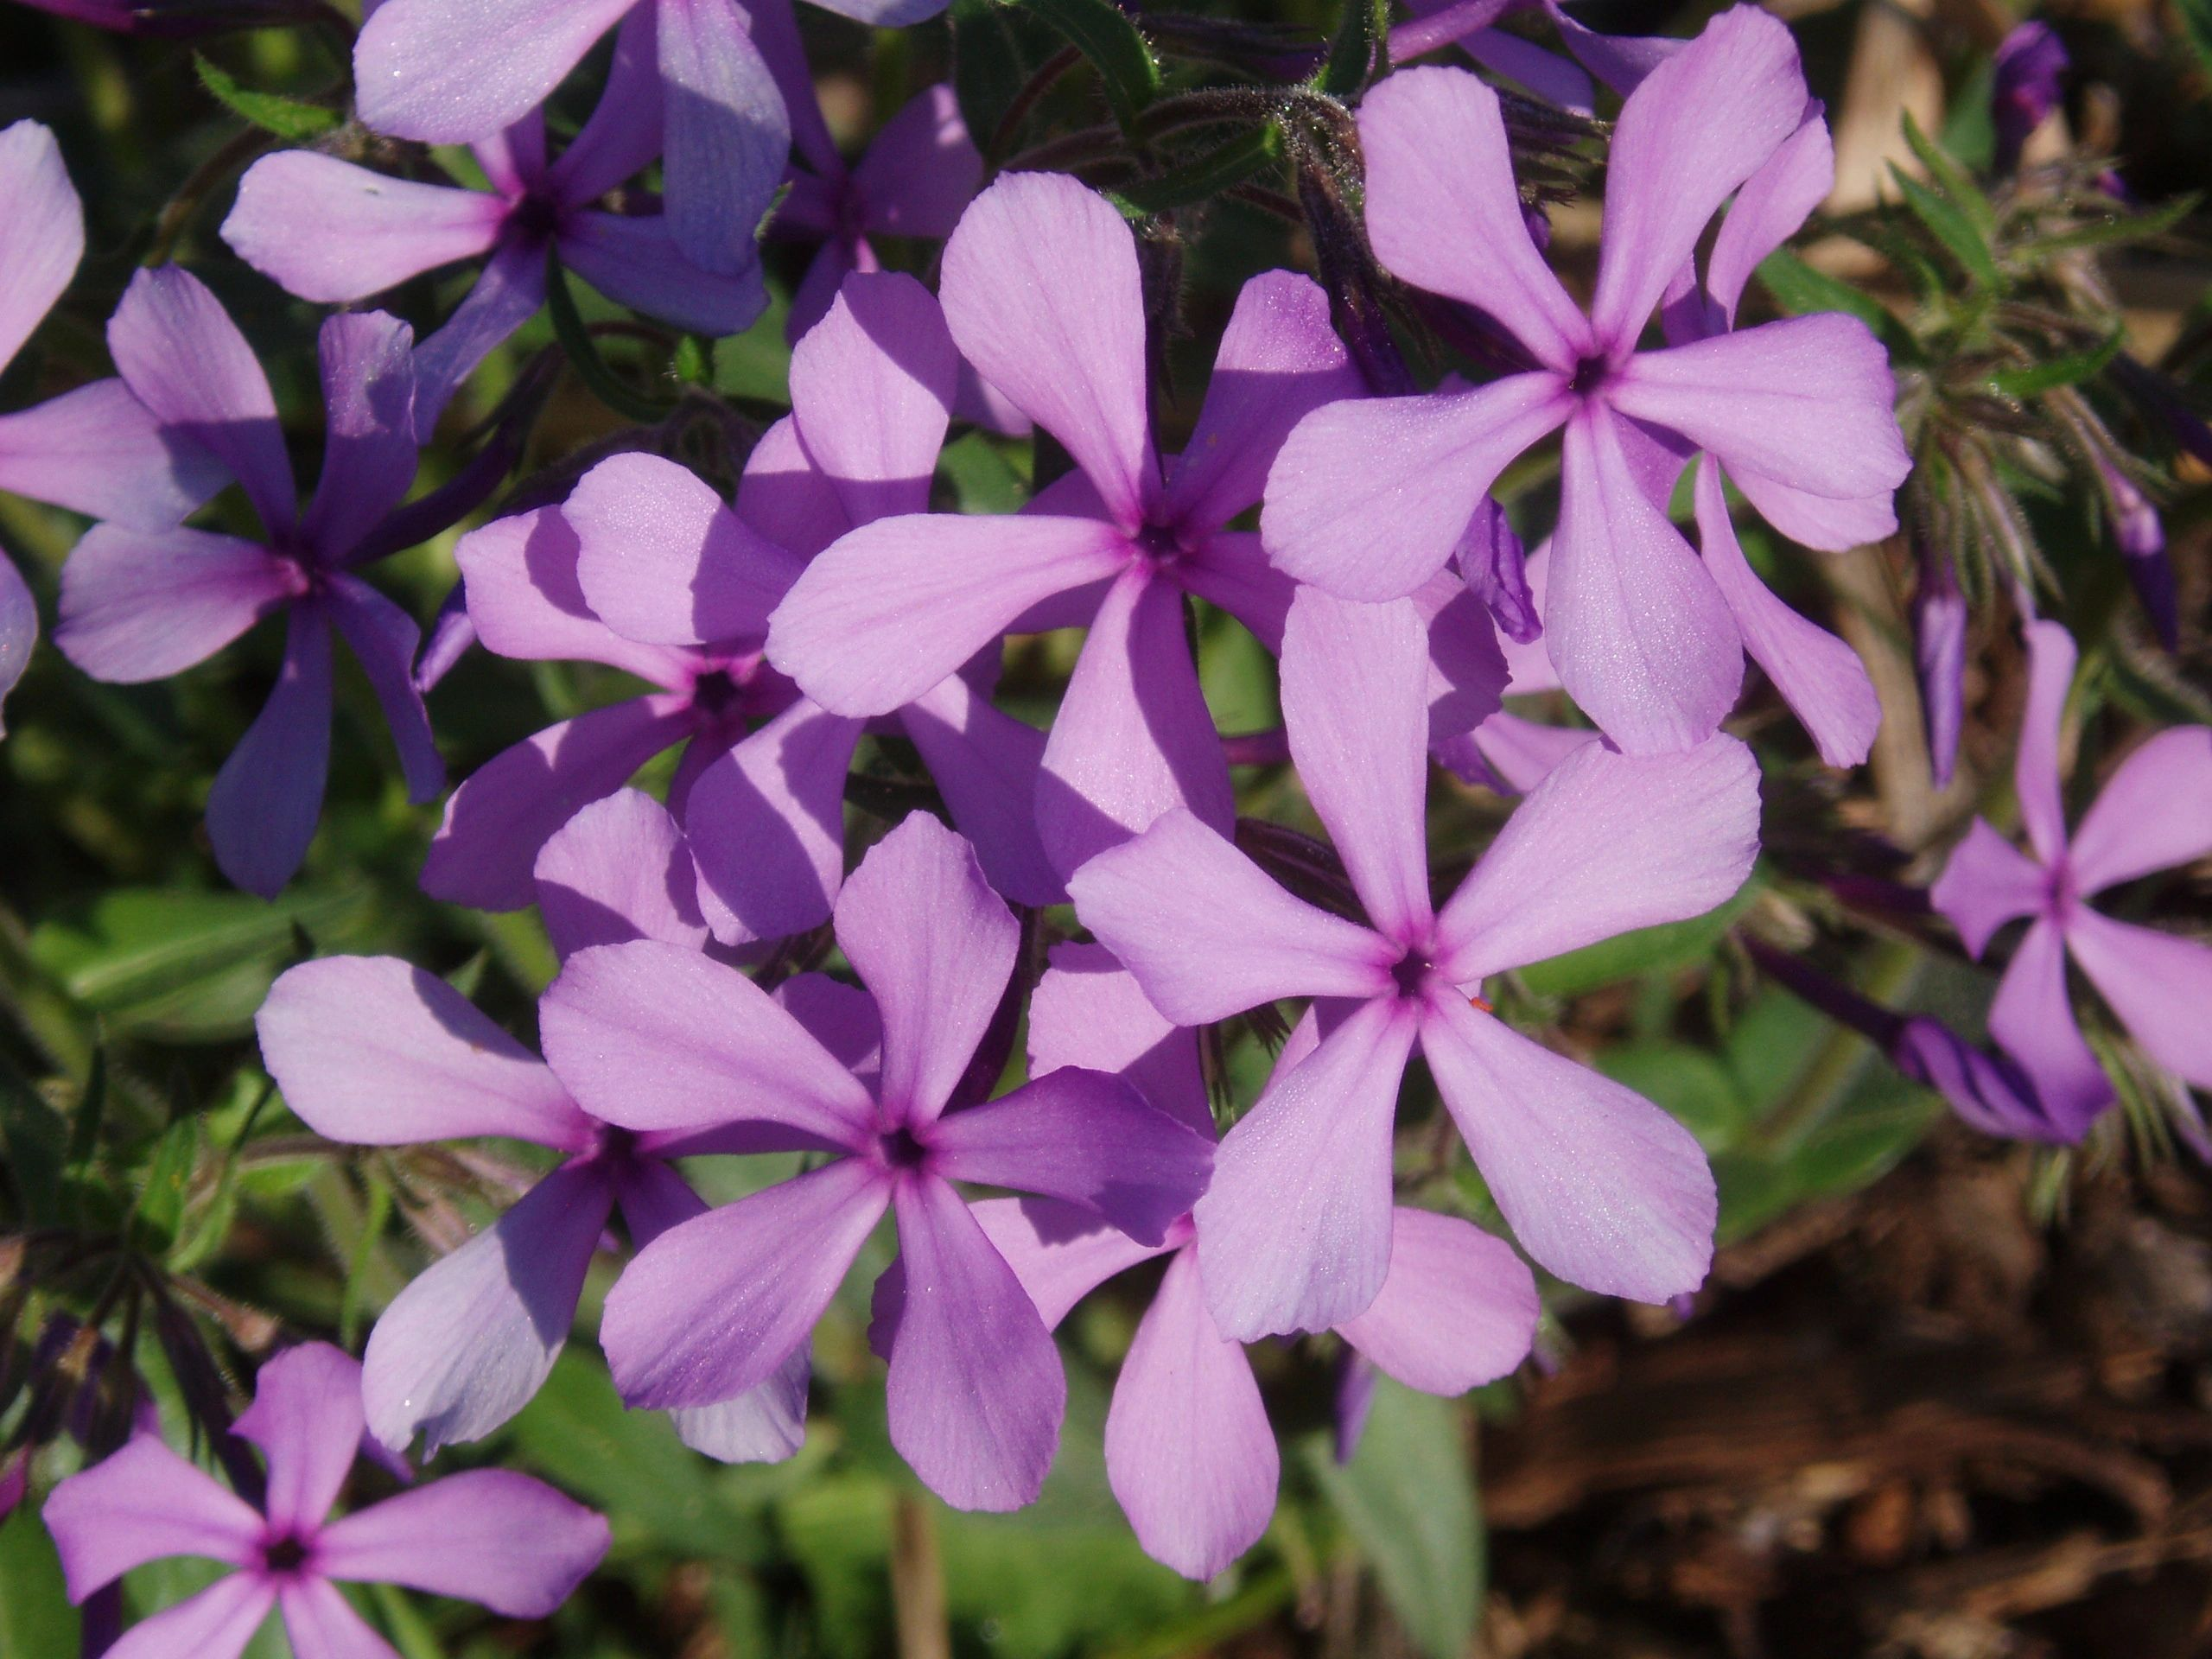 "{""blocks"":[{""key"":""66i4"",""text"":""Phlox divaricata Lapham's Woodland Phlox, Wild Sweet William - potted plants email john@easywildflowers.com"",""type"":""unstyled"",""depth"":0,""inlineStyleRanges"":[],""entityRanges"":[],""data"":{}}],""entityMap"":{}}"